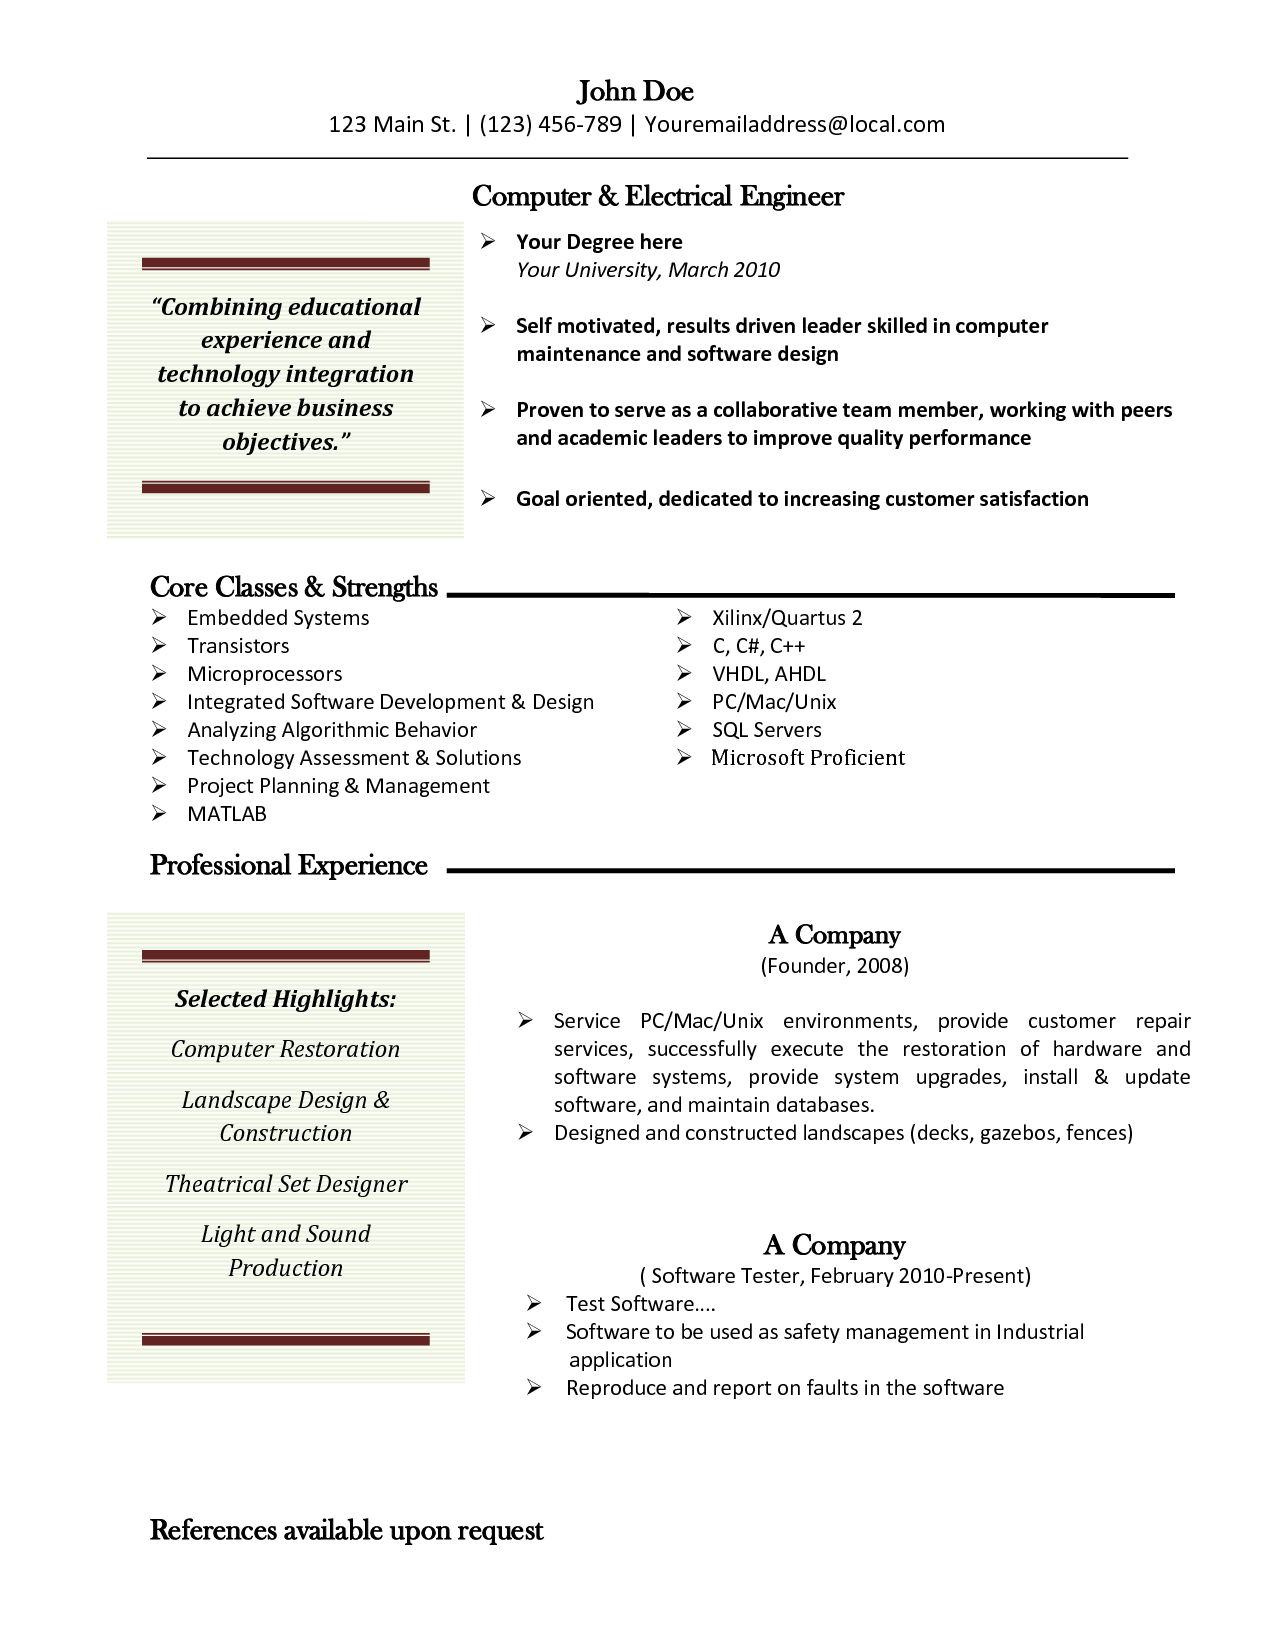 Free Resume Templates For Microsoft Word Resume Templates For Mac  Httpwwwjobresumewebsiteresume